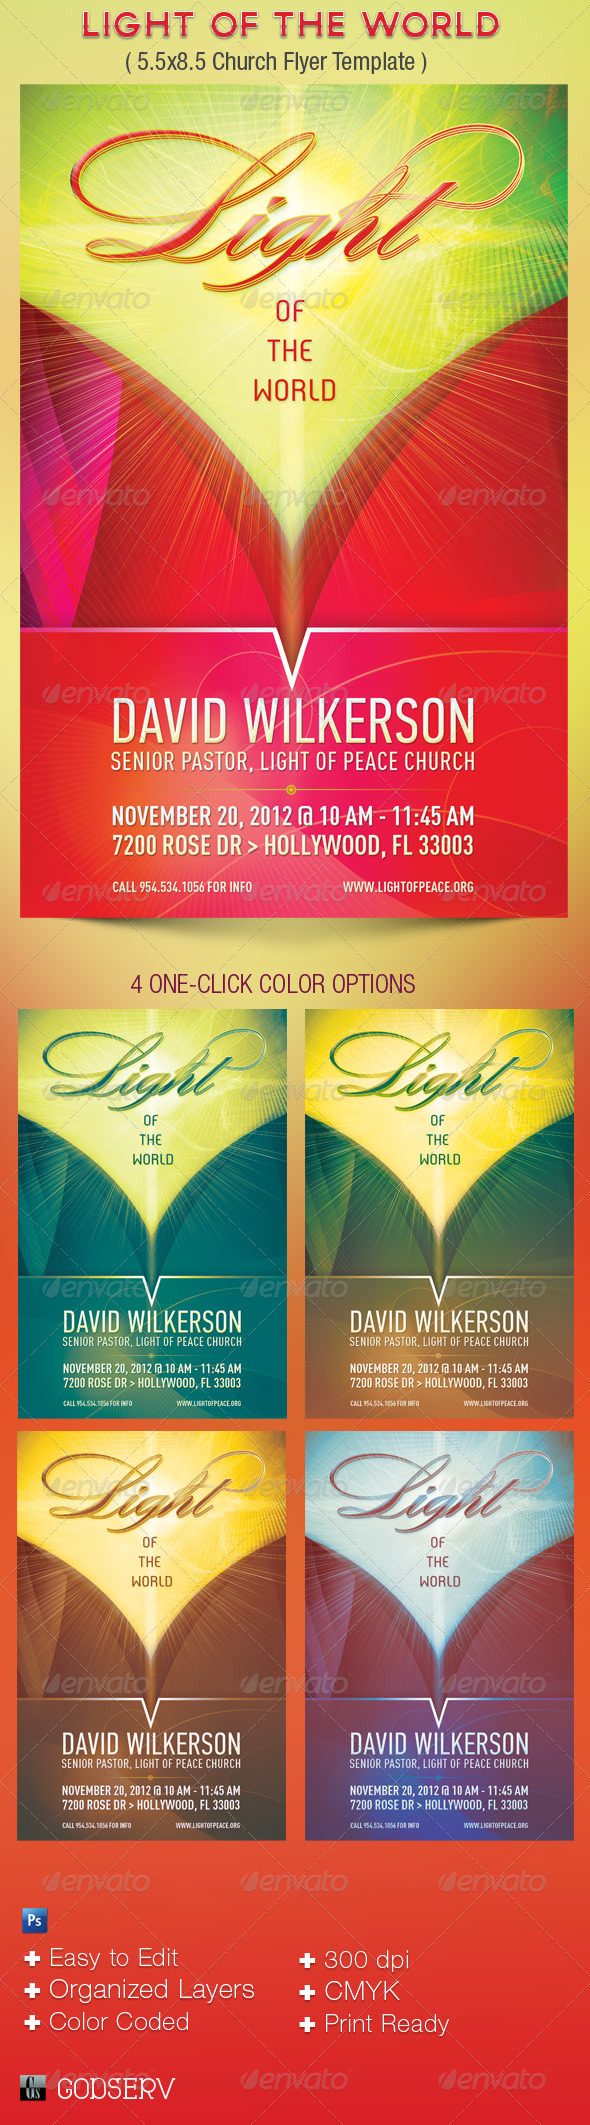 Light of The World  8.5x5.5 Church Flyer Template - Church Flyers